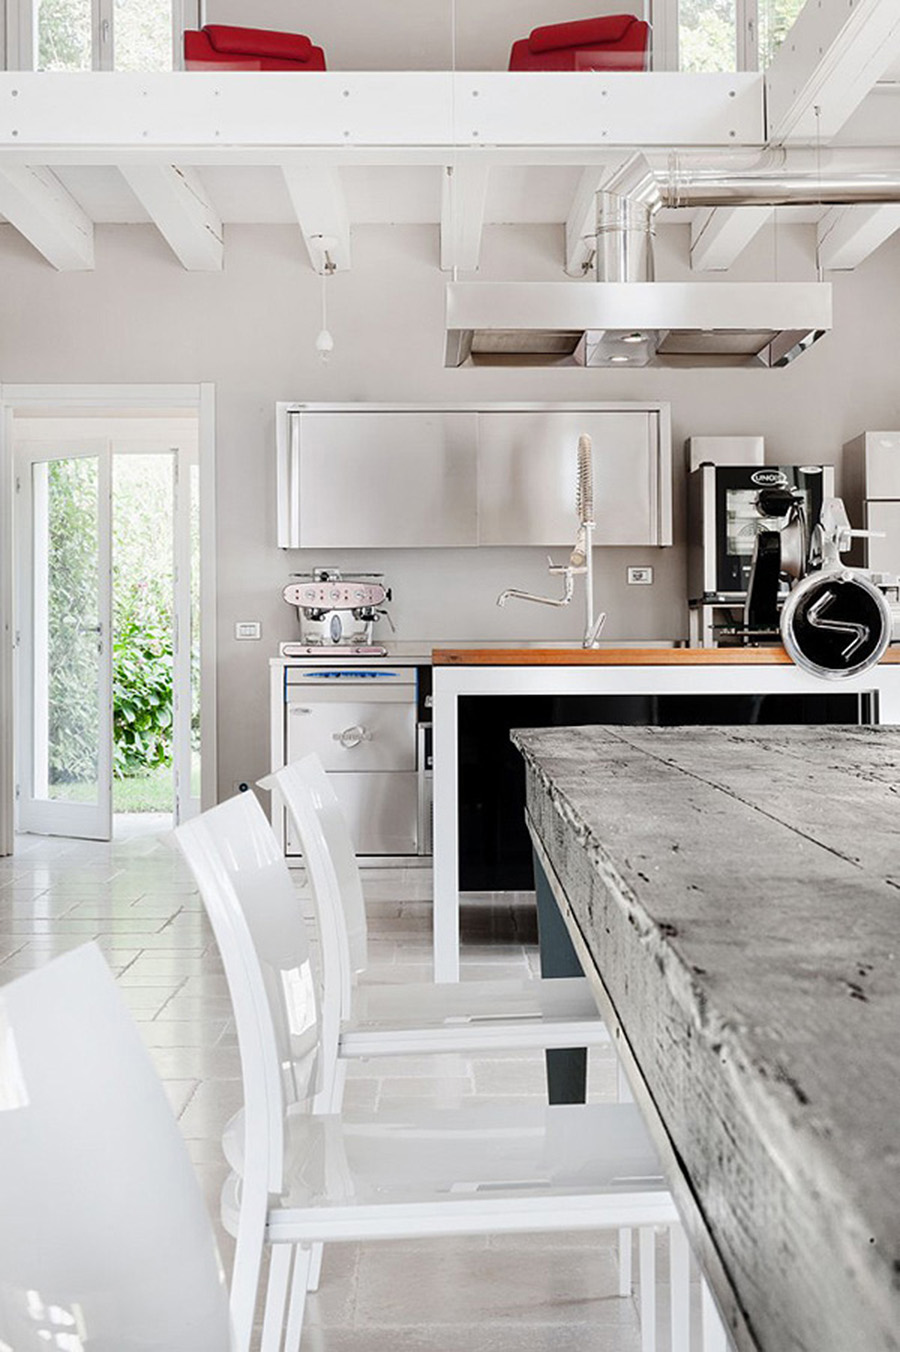 Home Inspiration // Italian Villa With An Industrial Design Feel | A ...